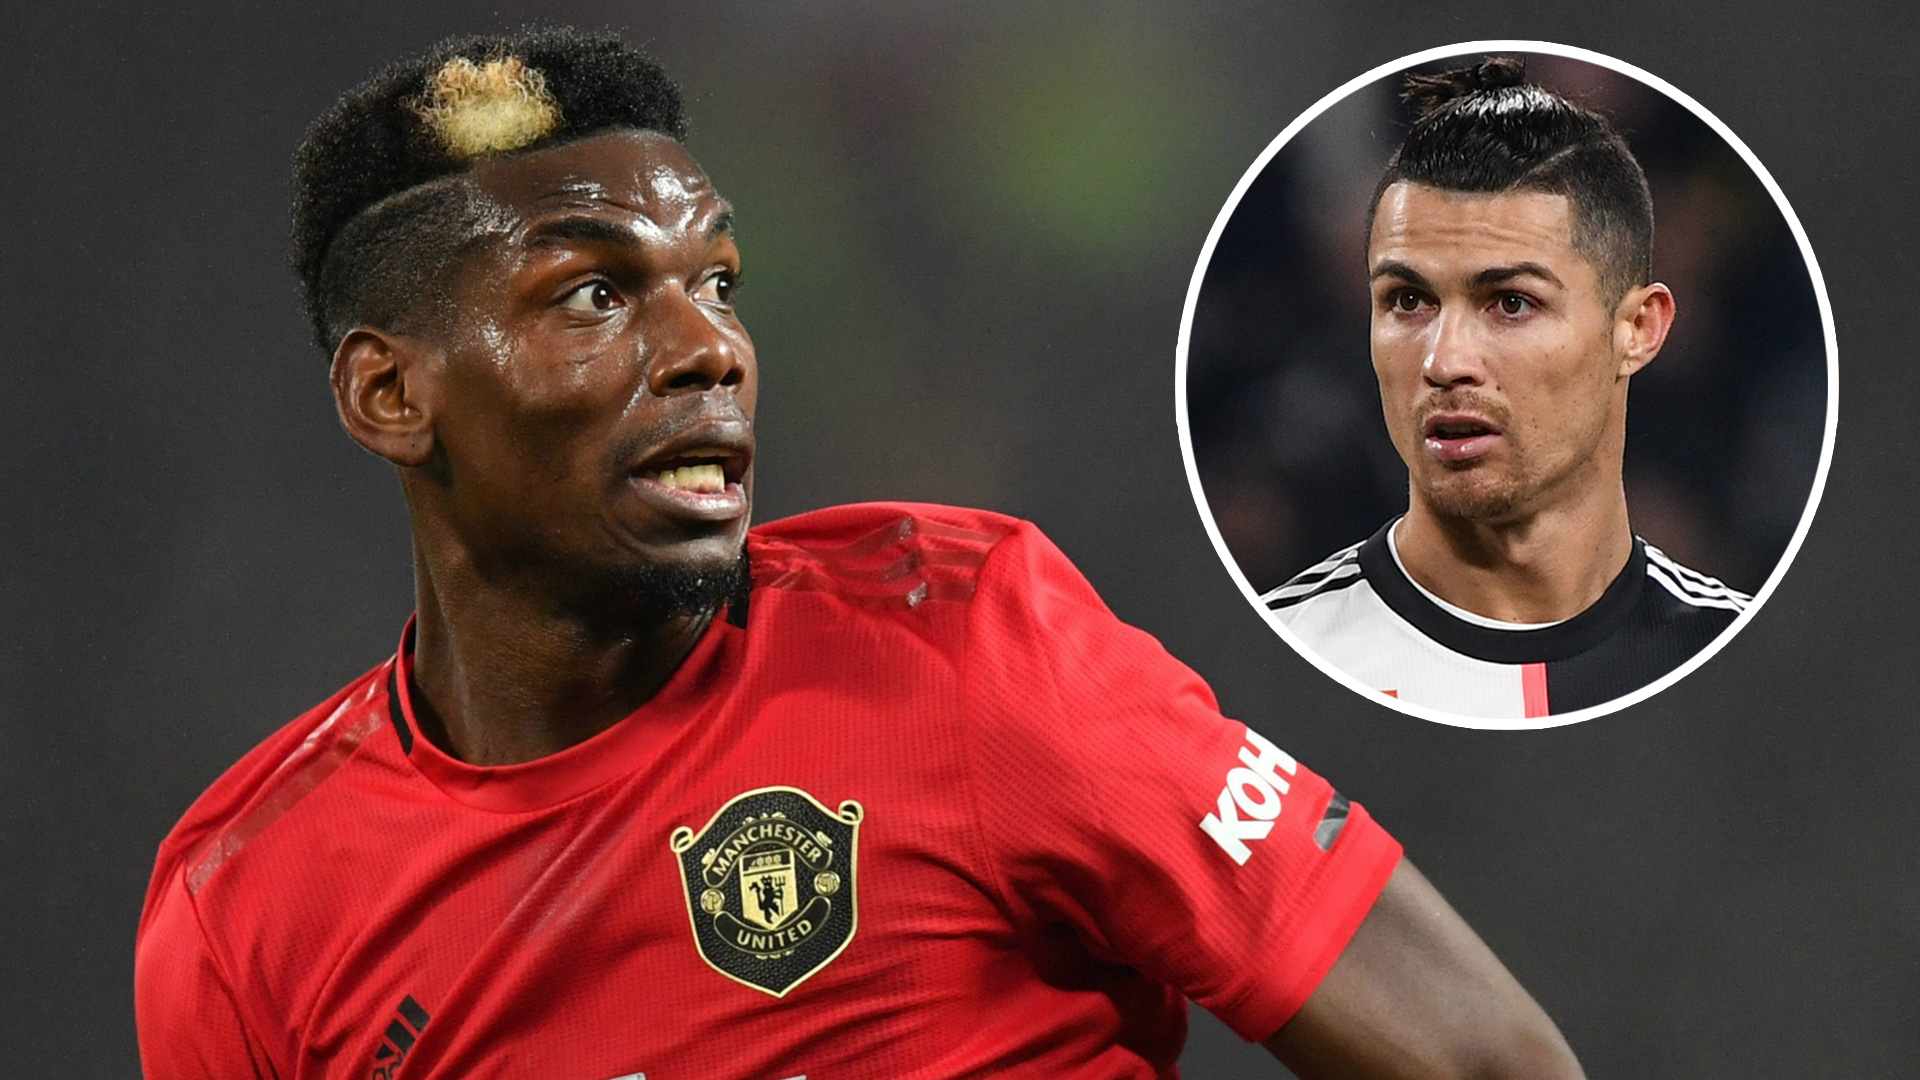 'I see him joining Juventus, they've got Ronaldo!' - Sagna tips Pogba for Serie A return